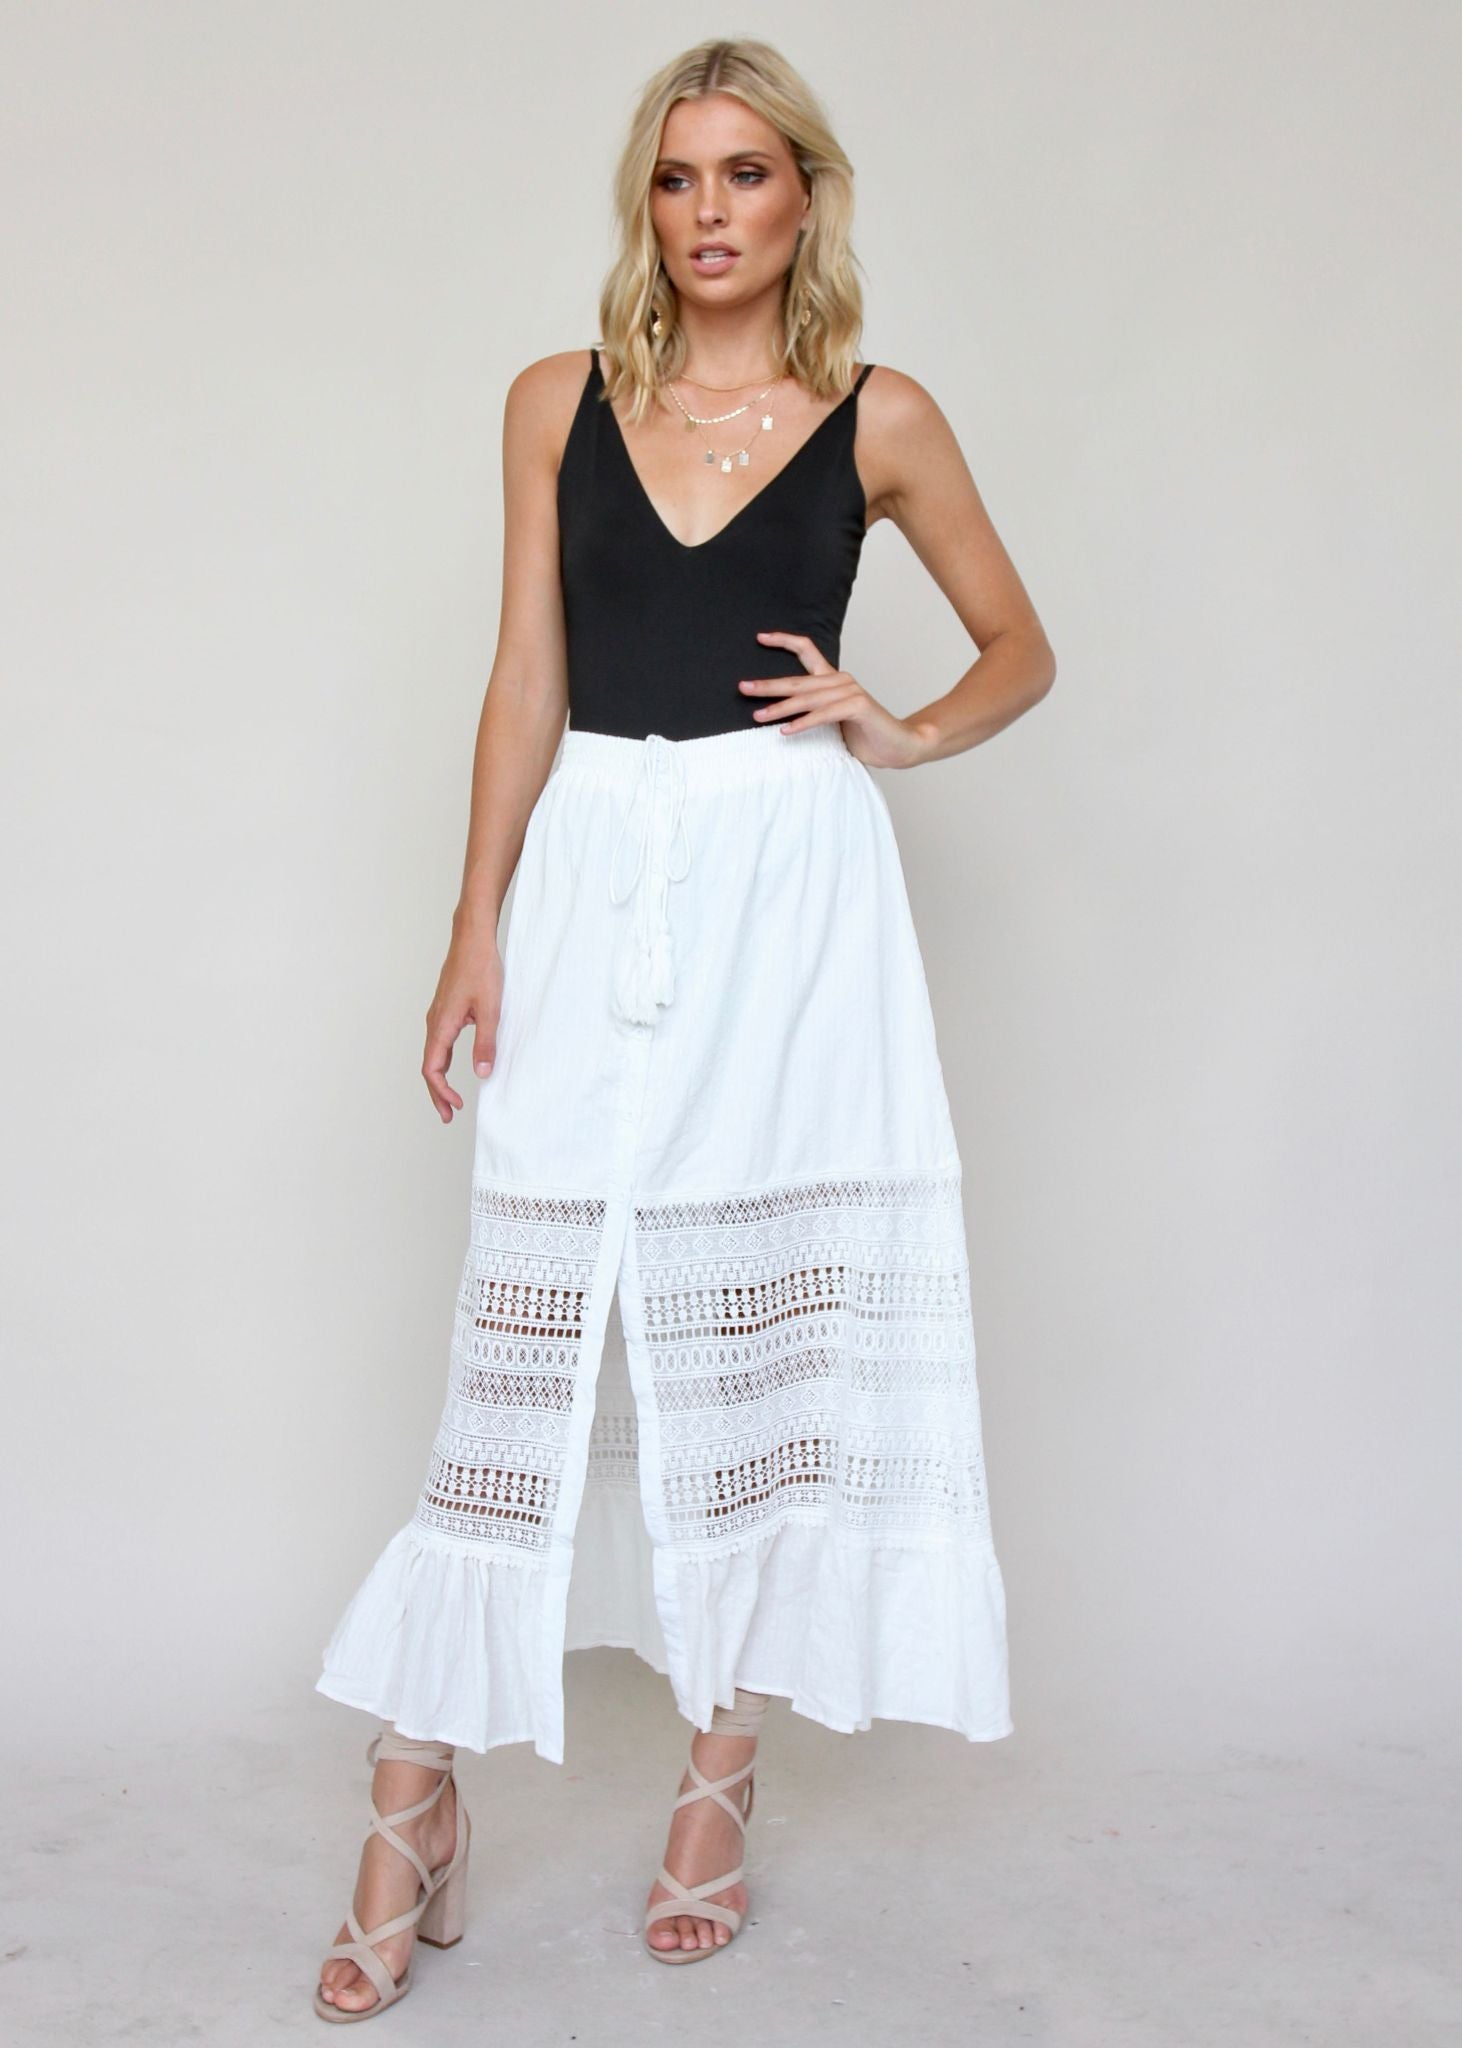 Spring To It Skirt - White